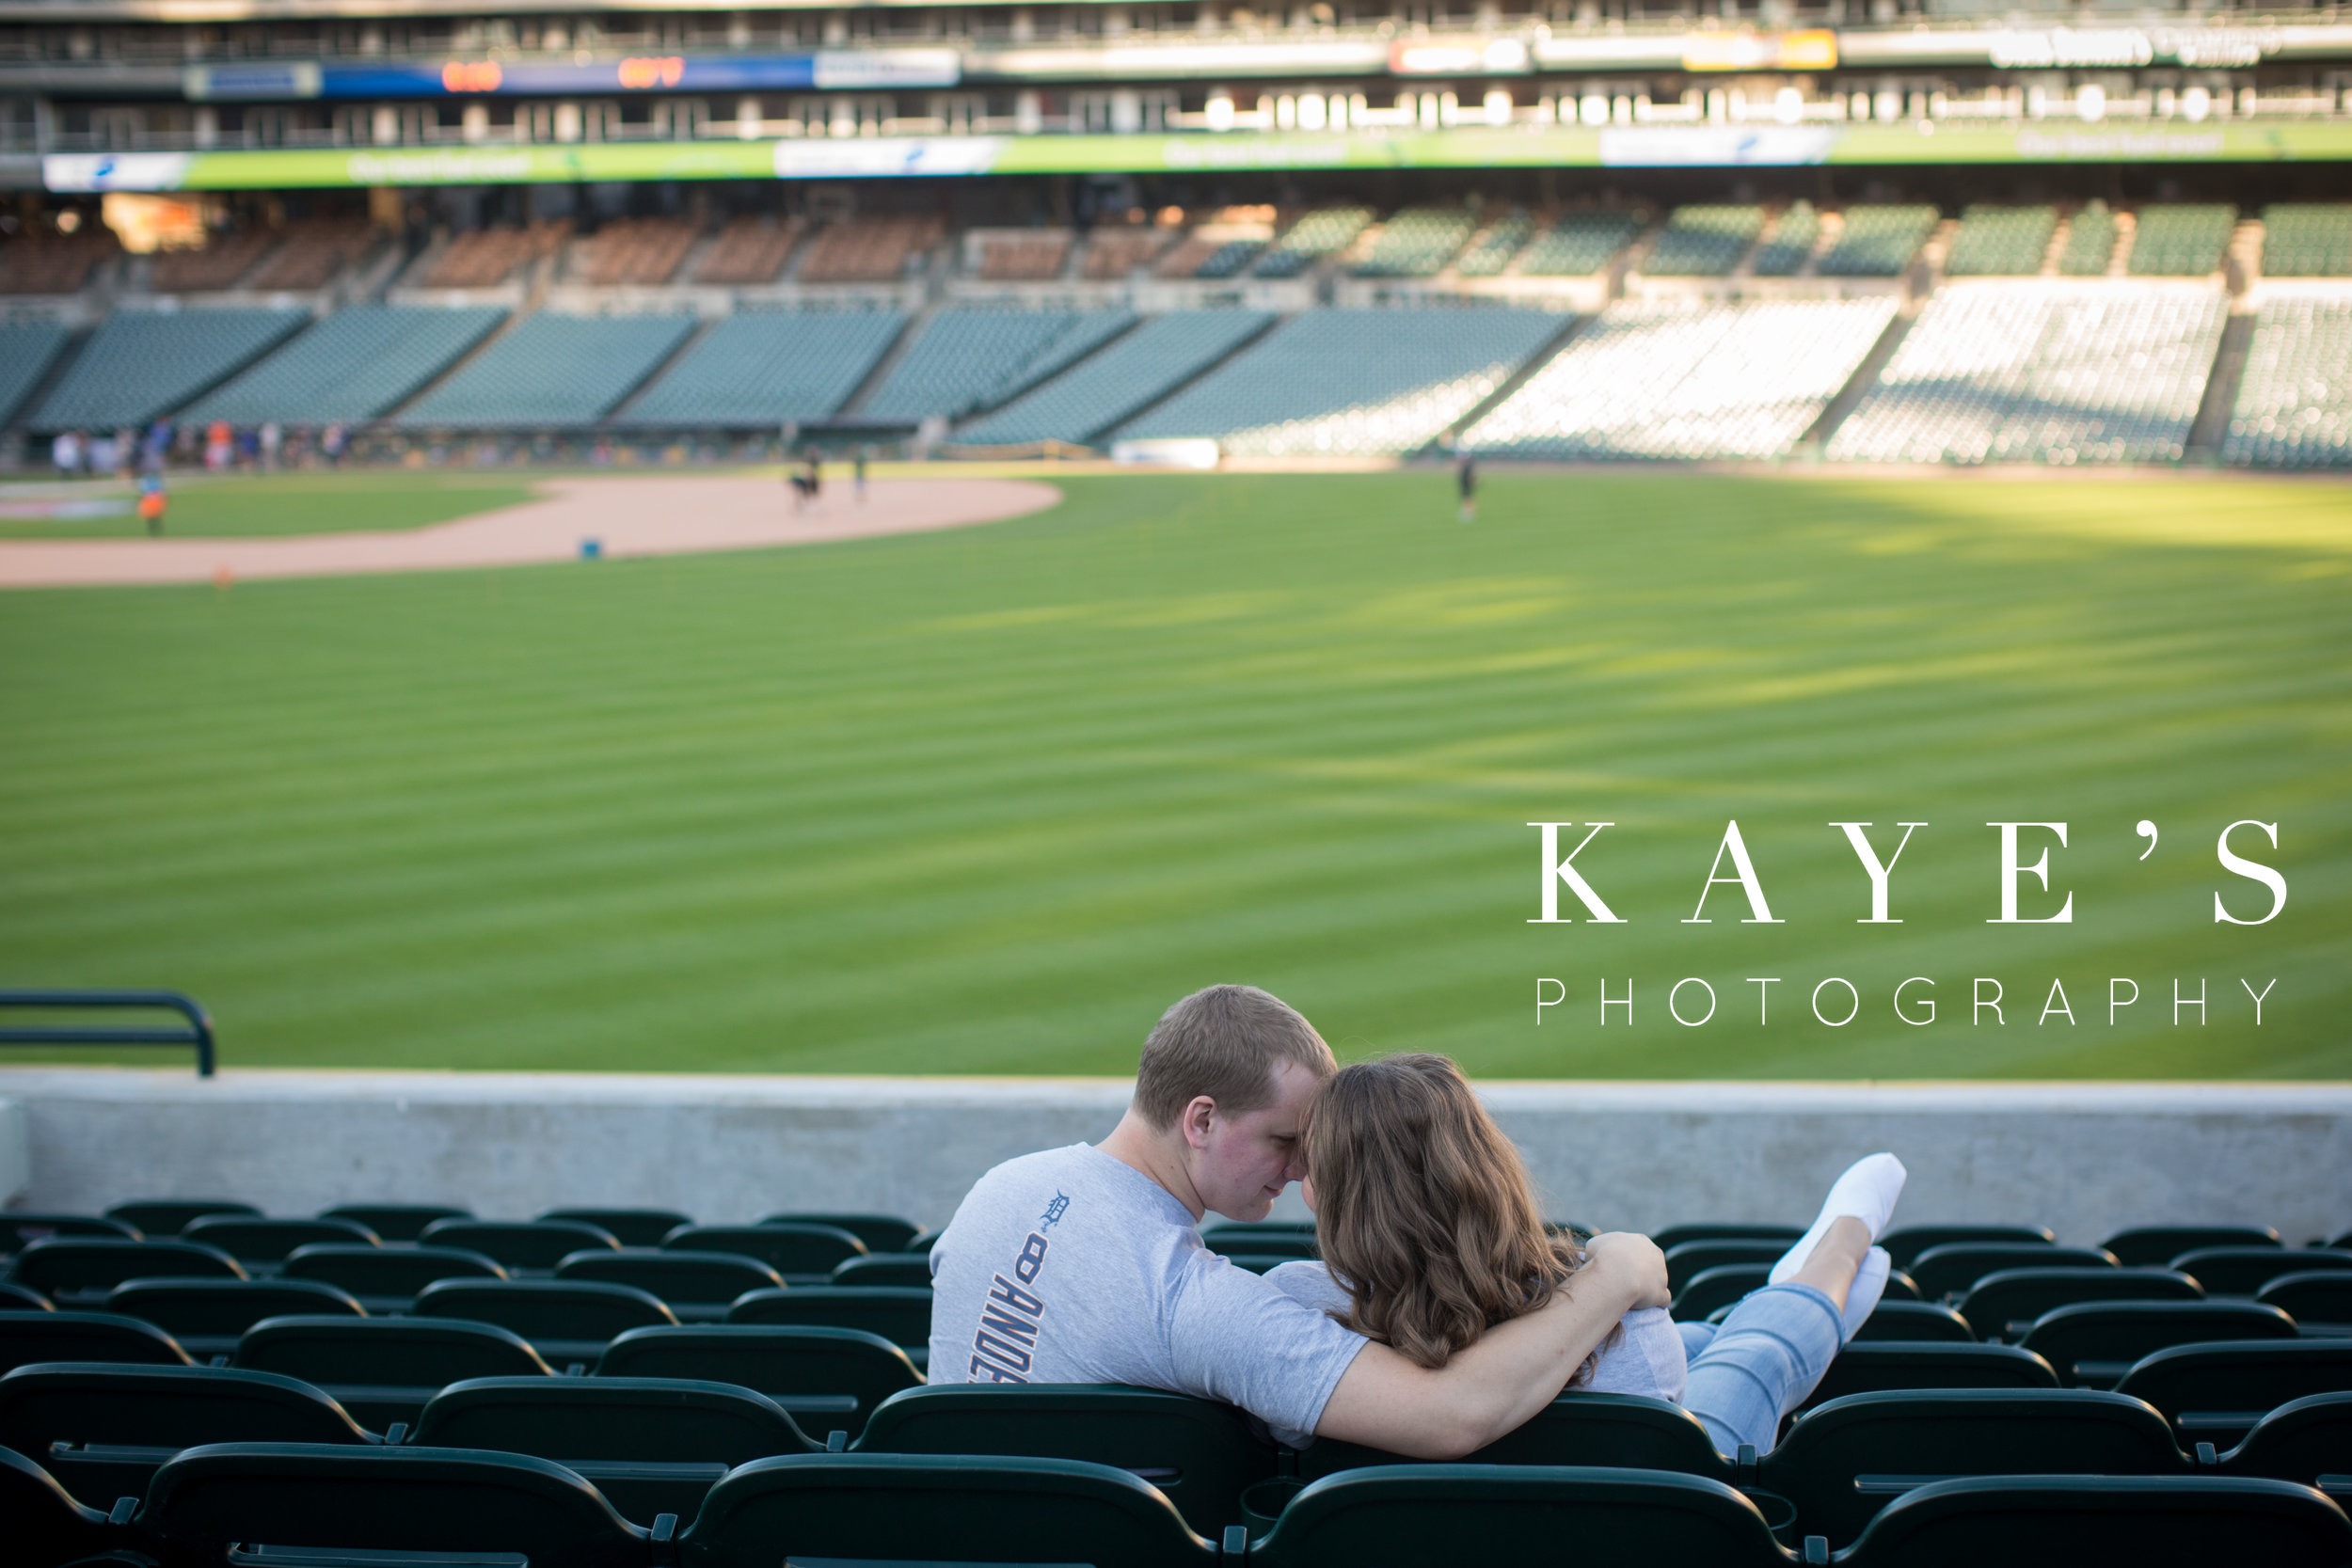 engagement session in the detroit tiger's stadium with kayes photography